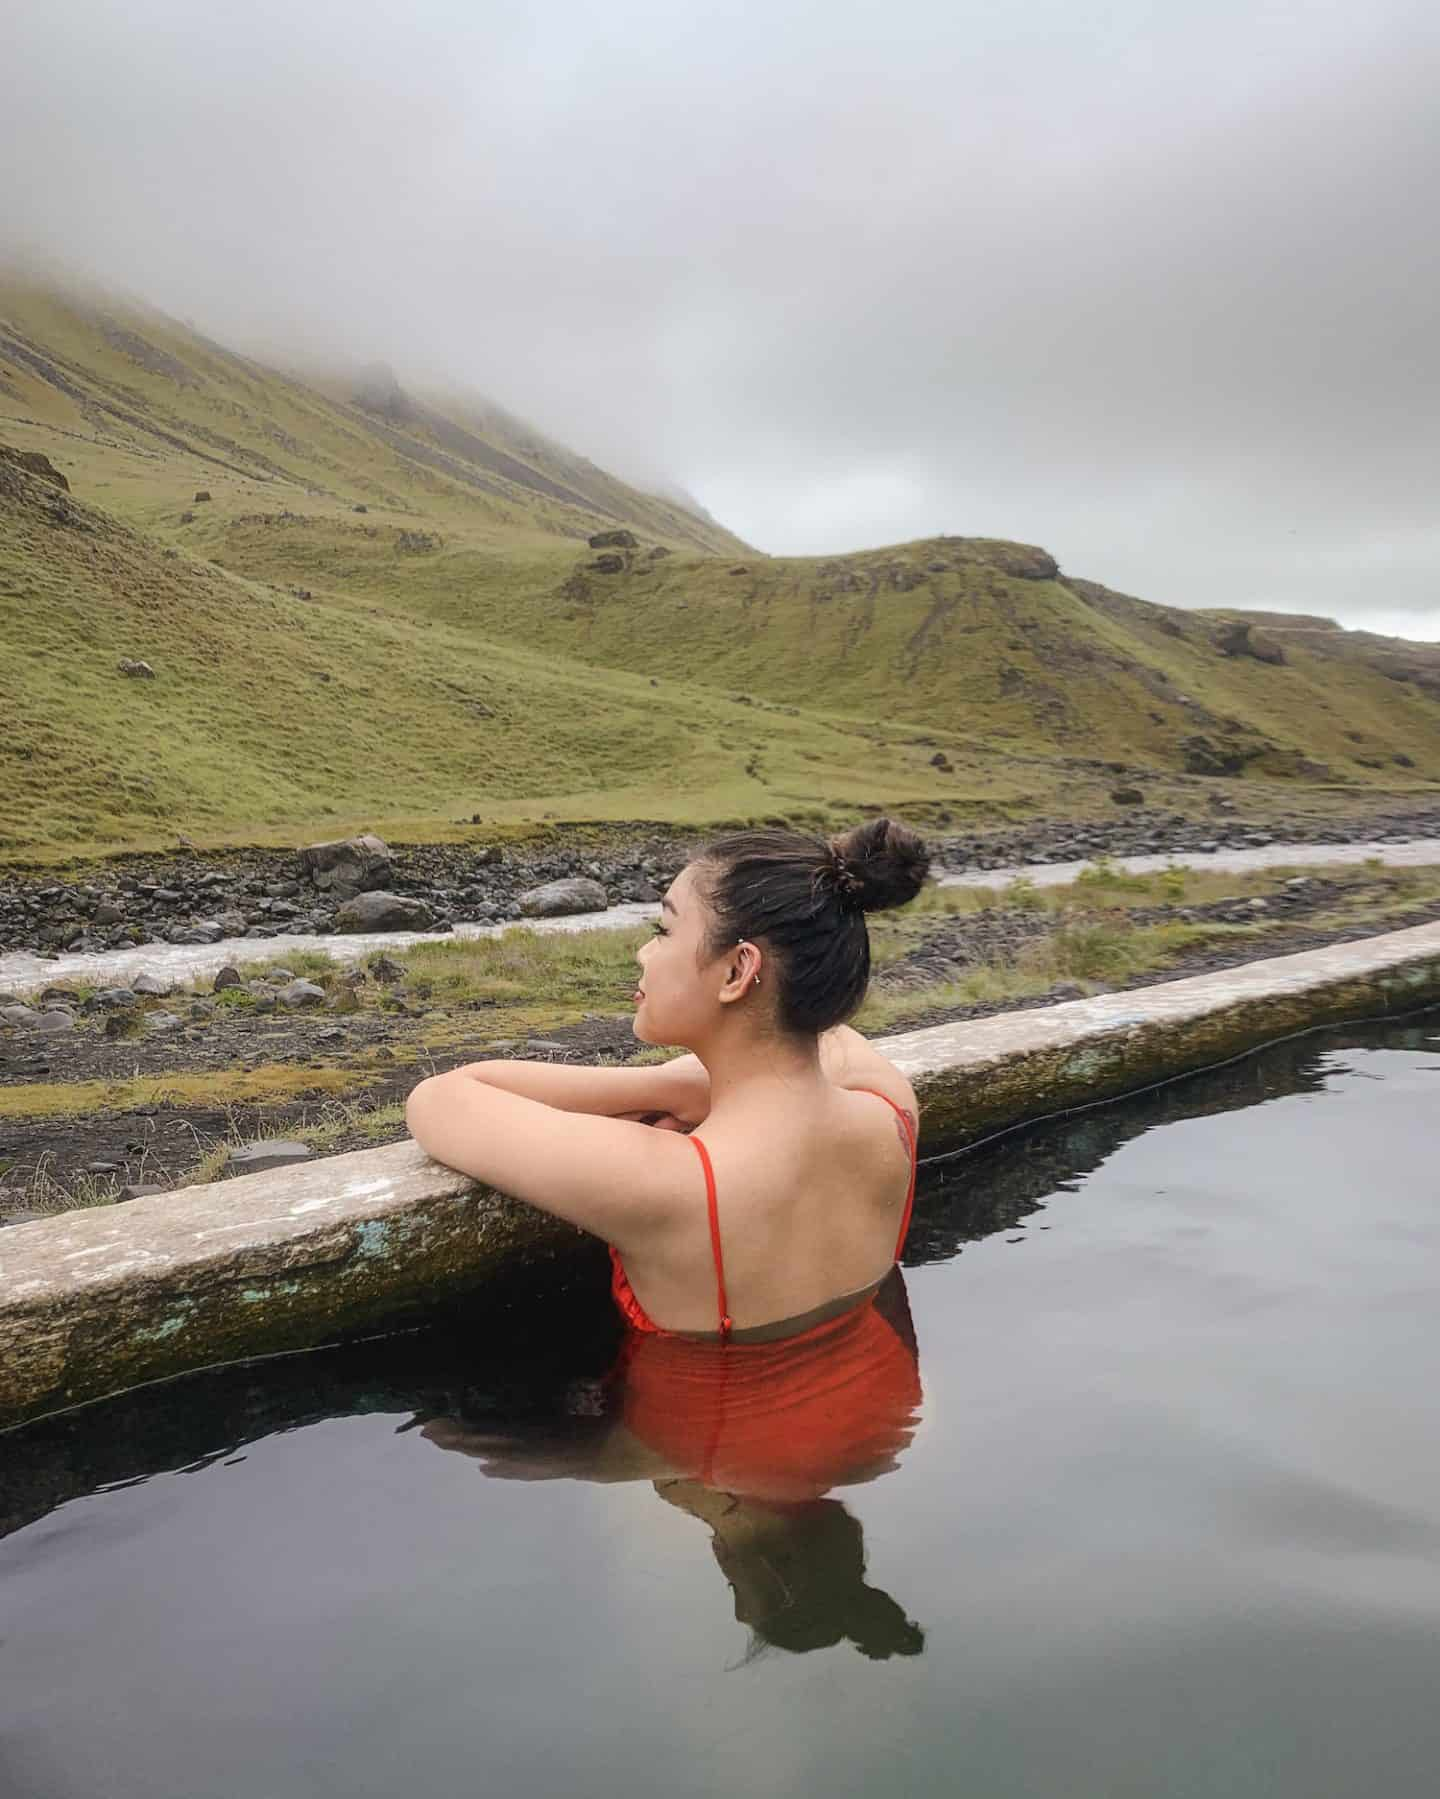 Seljavallalaug Pool along the Ring Road in Iceland